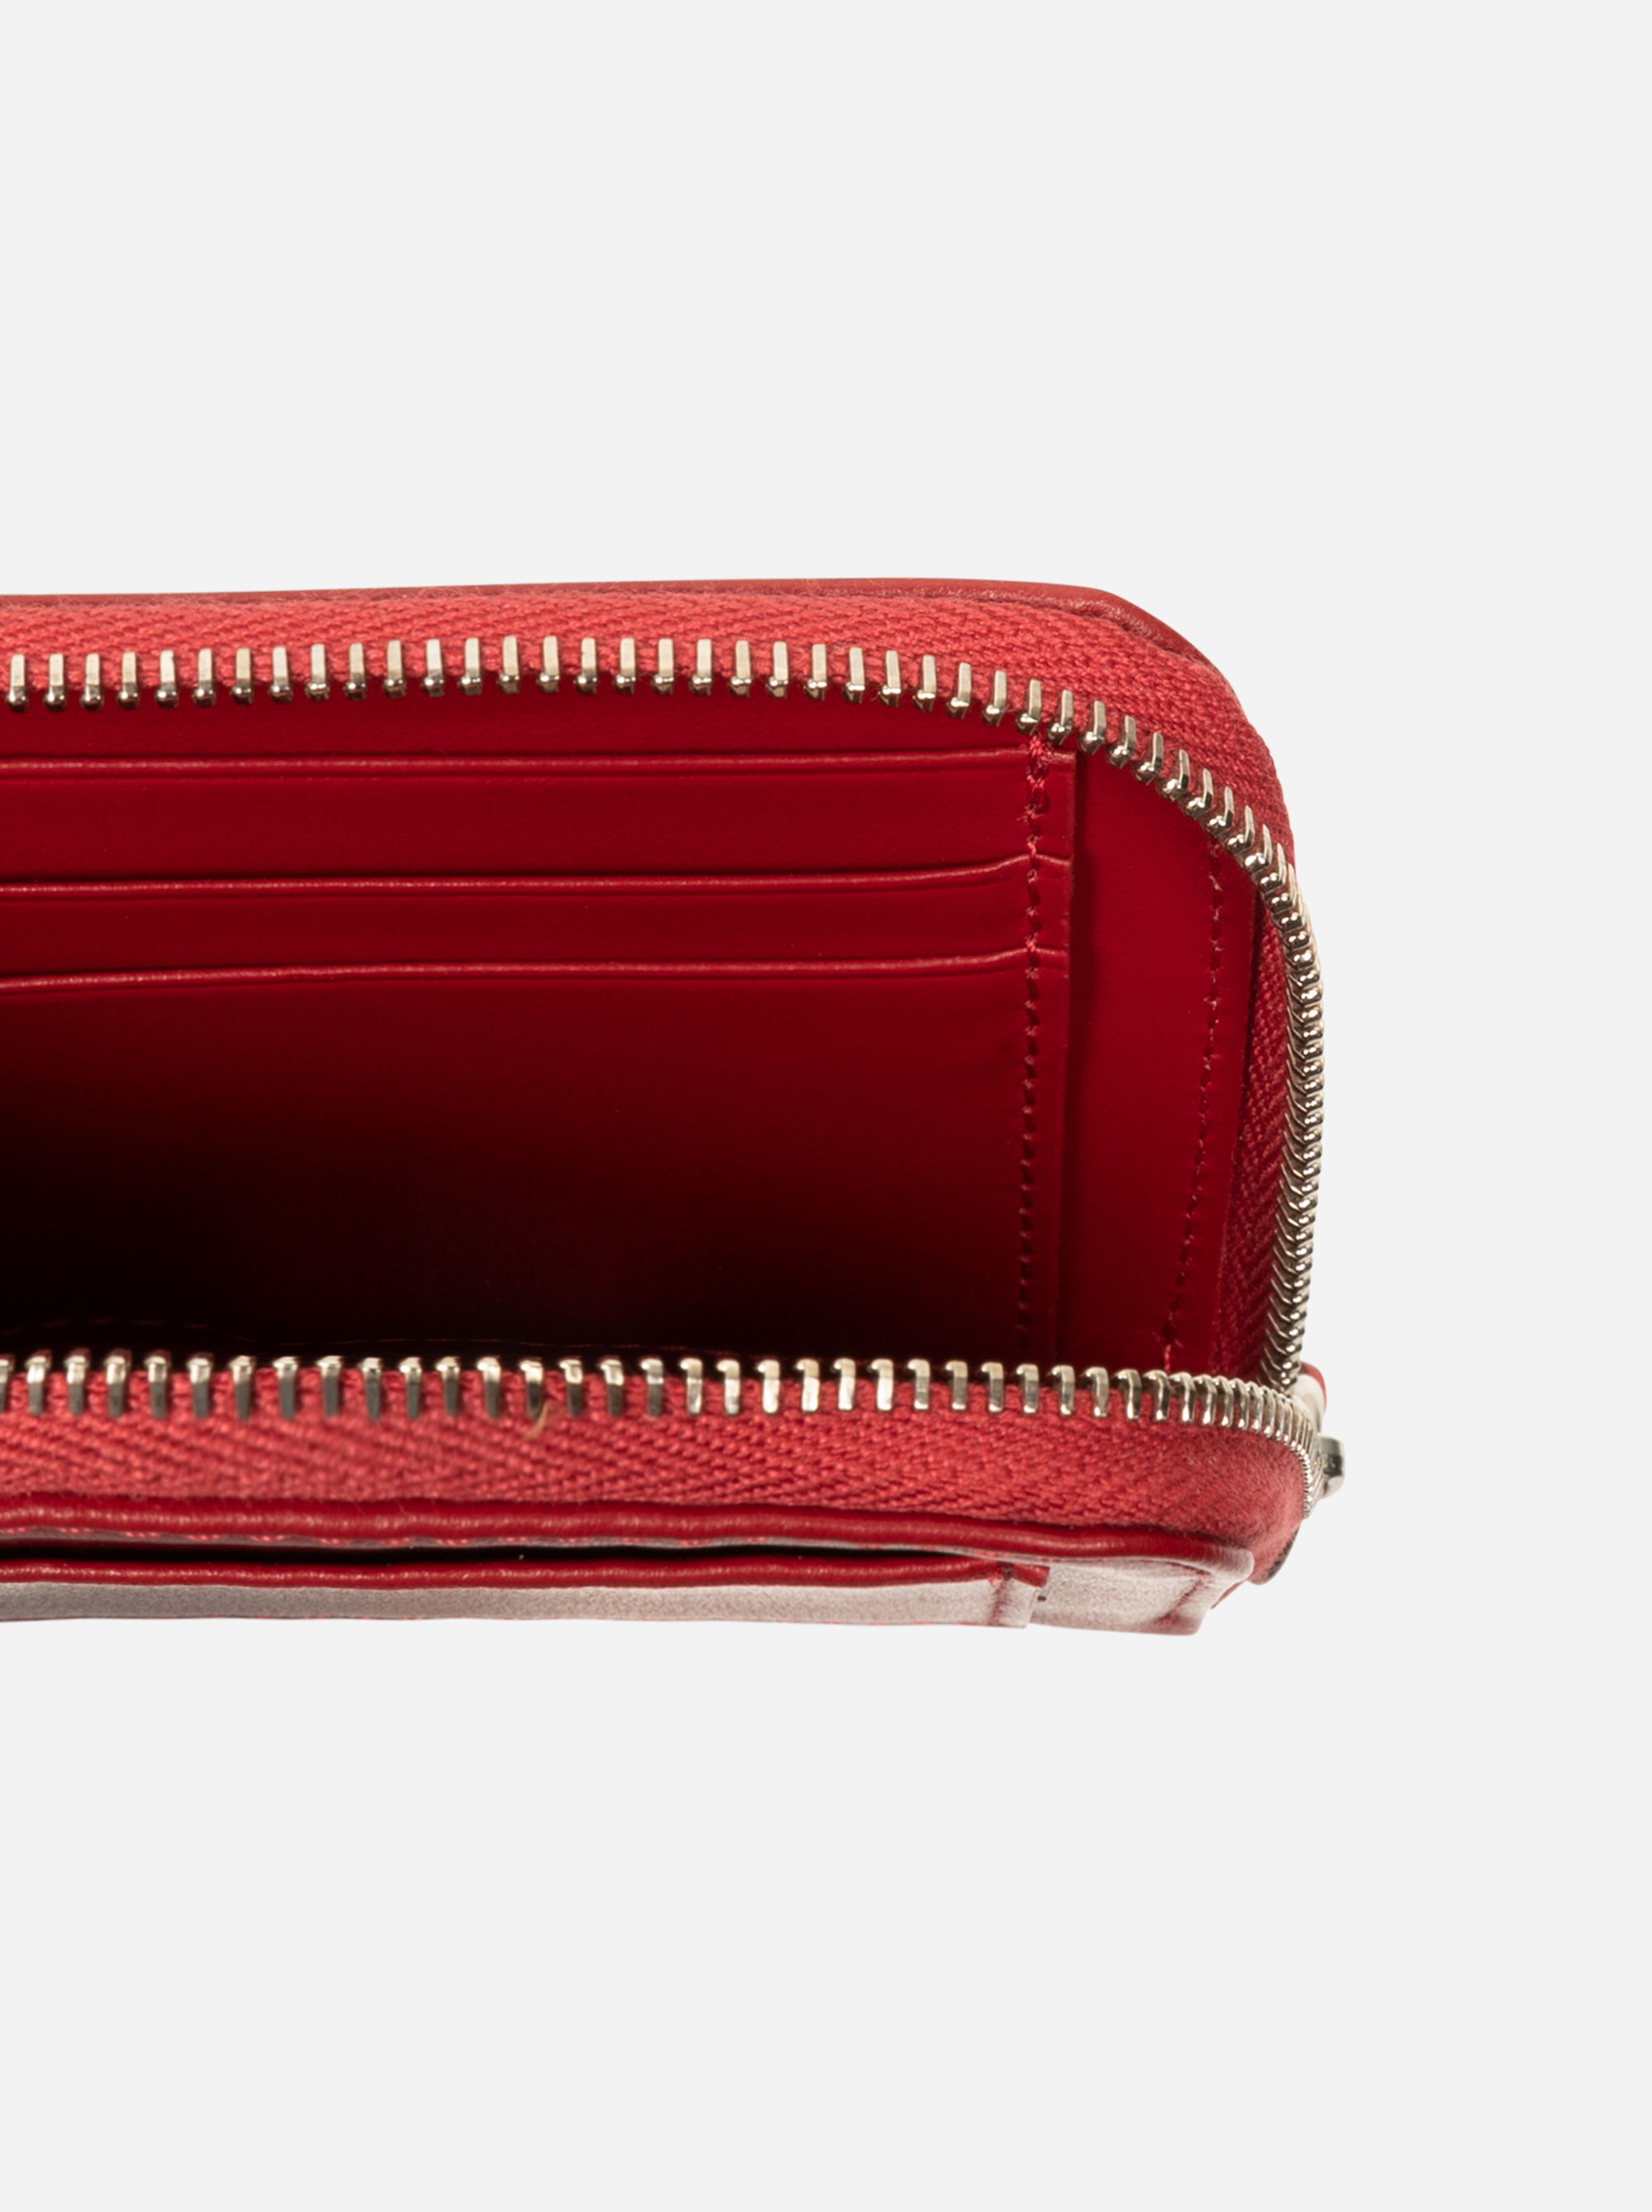 Teym - The Wallet - Red - 3